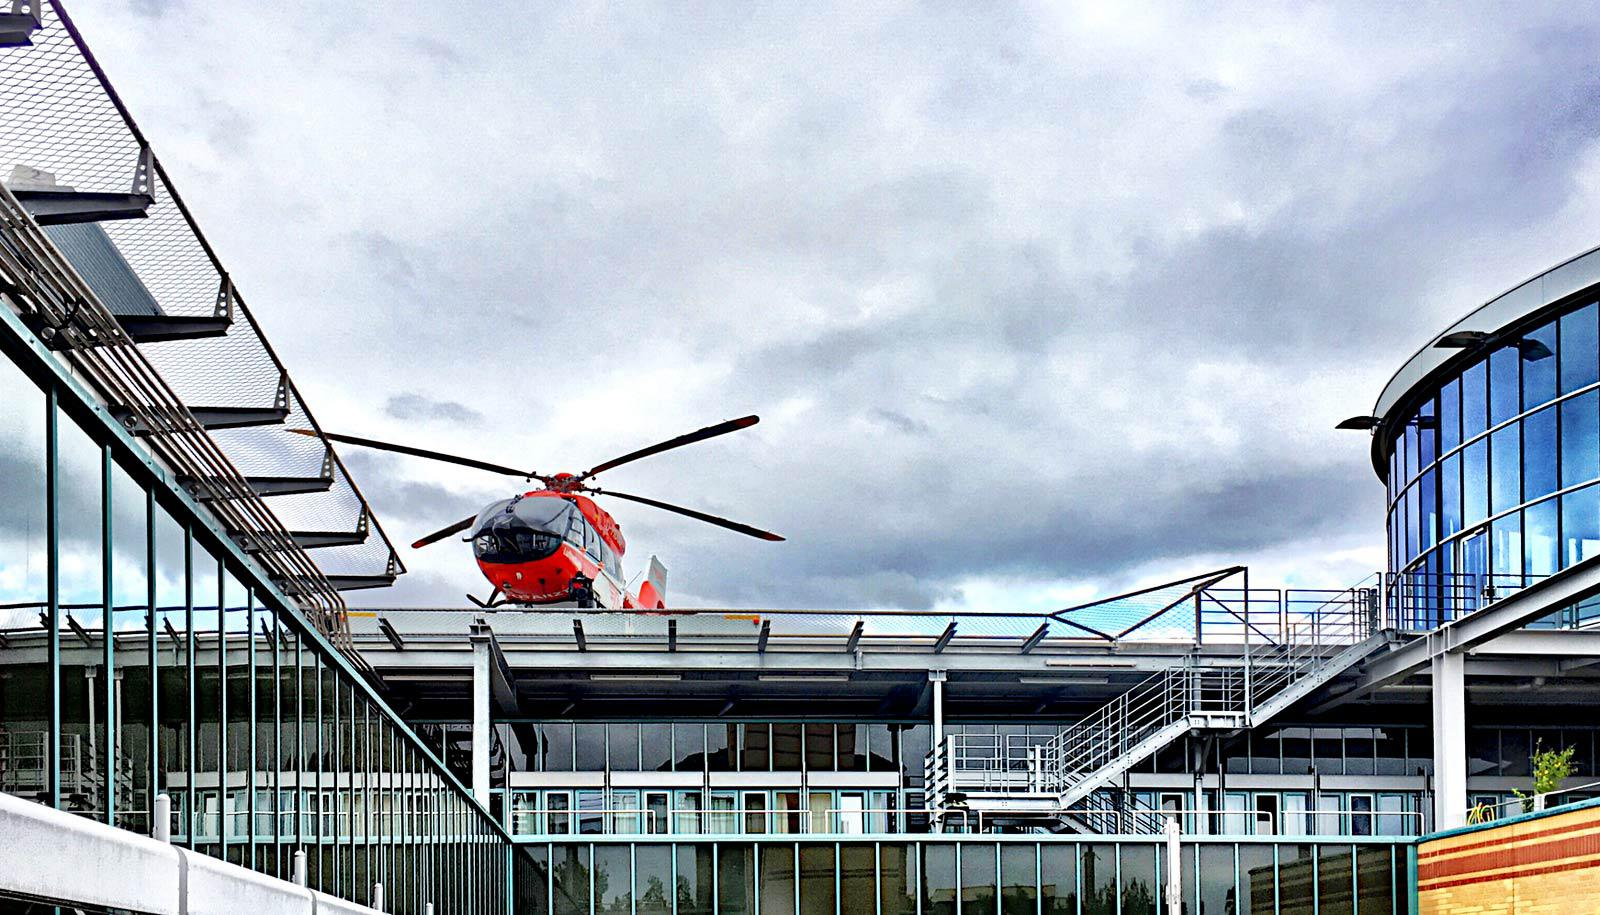 helicopter on hospital roof - lung transplants